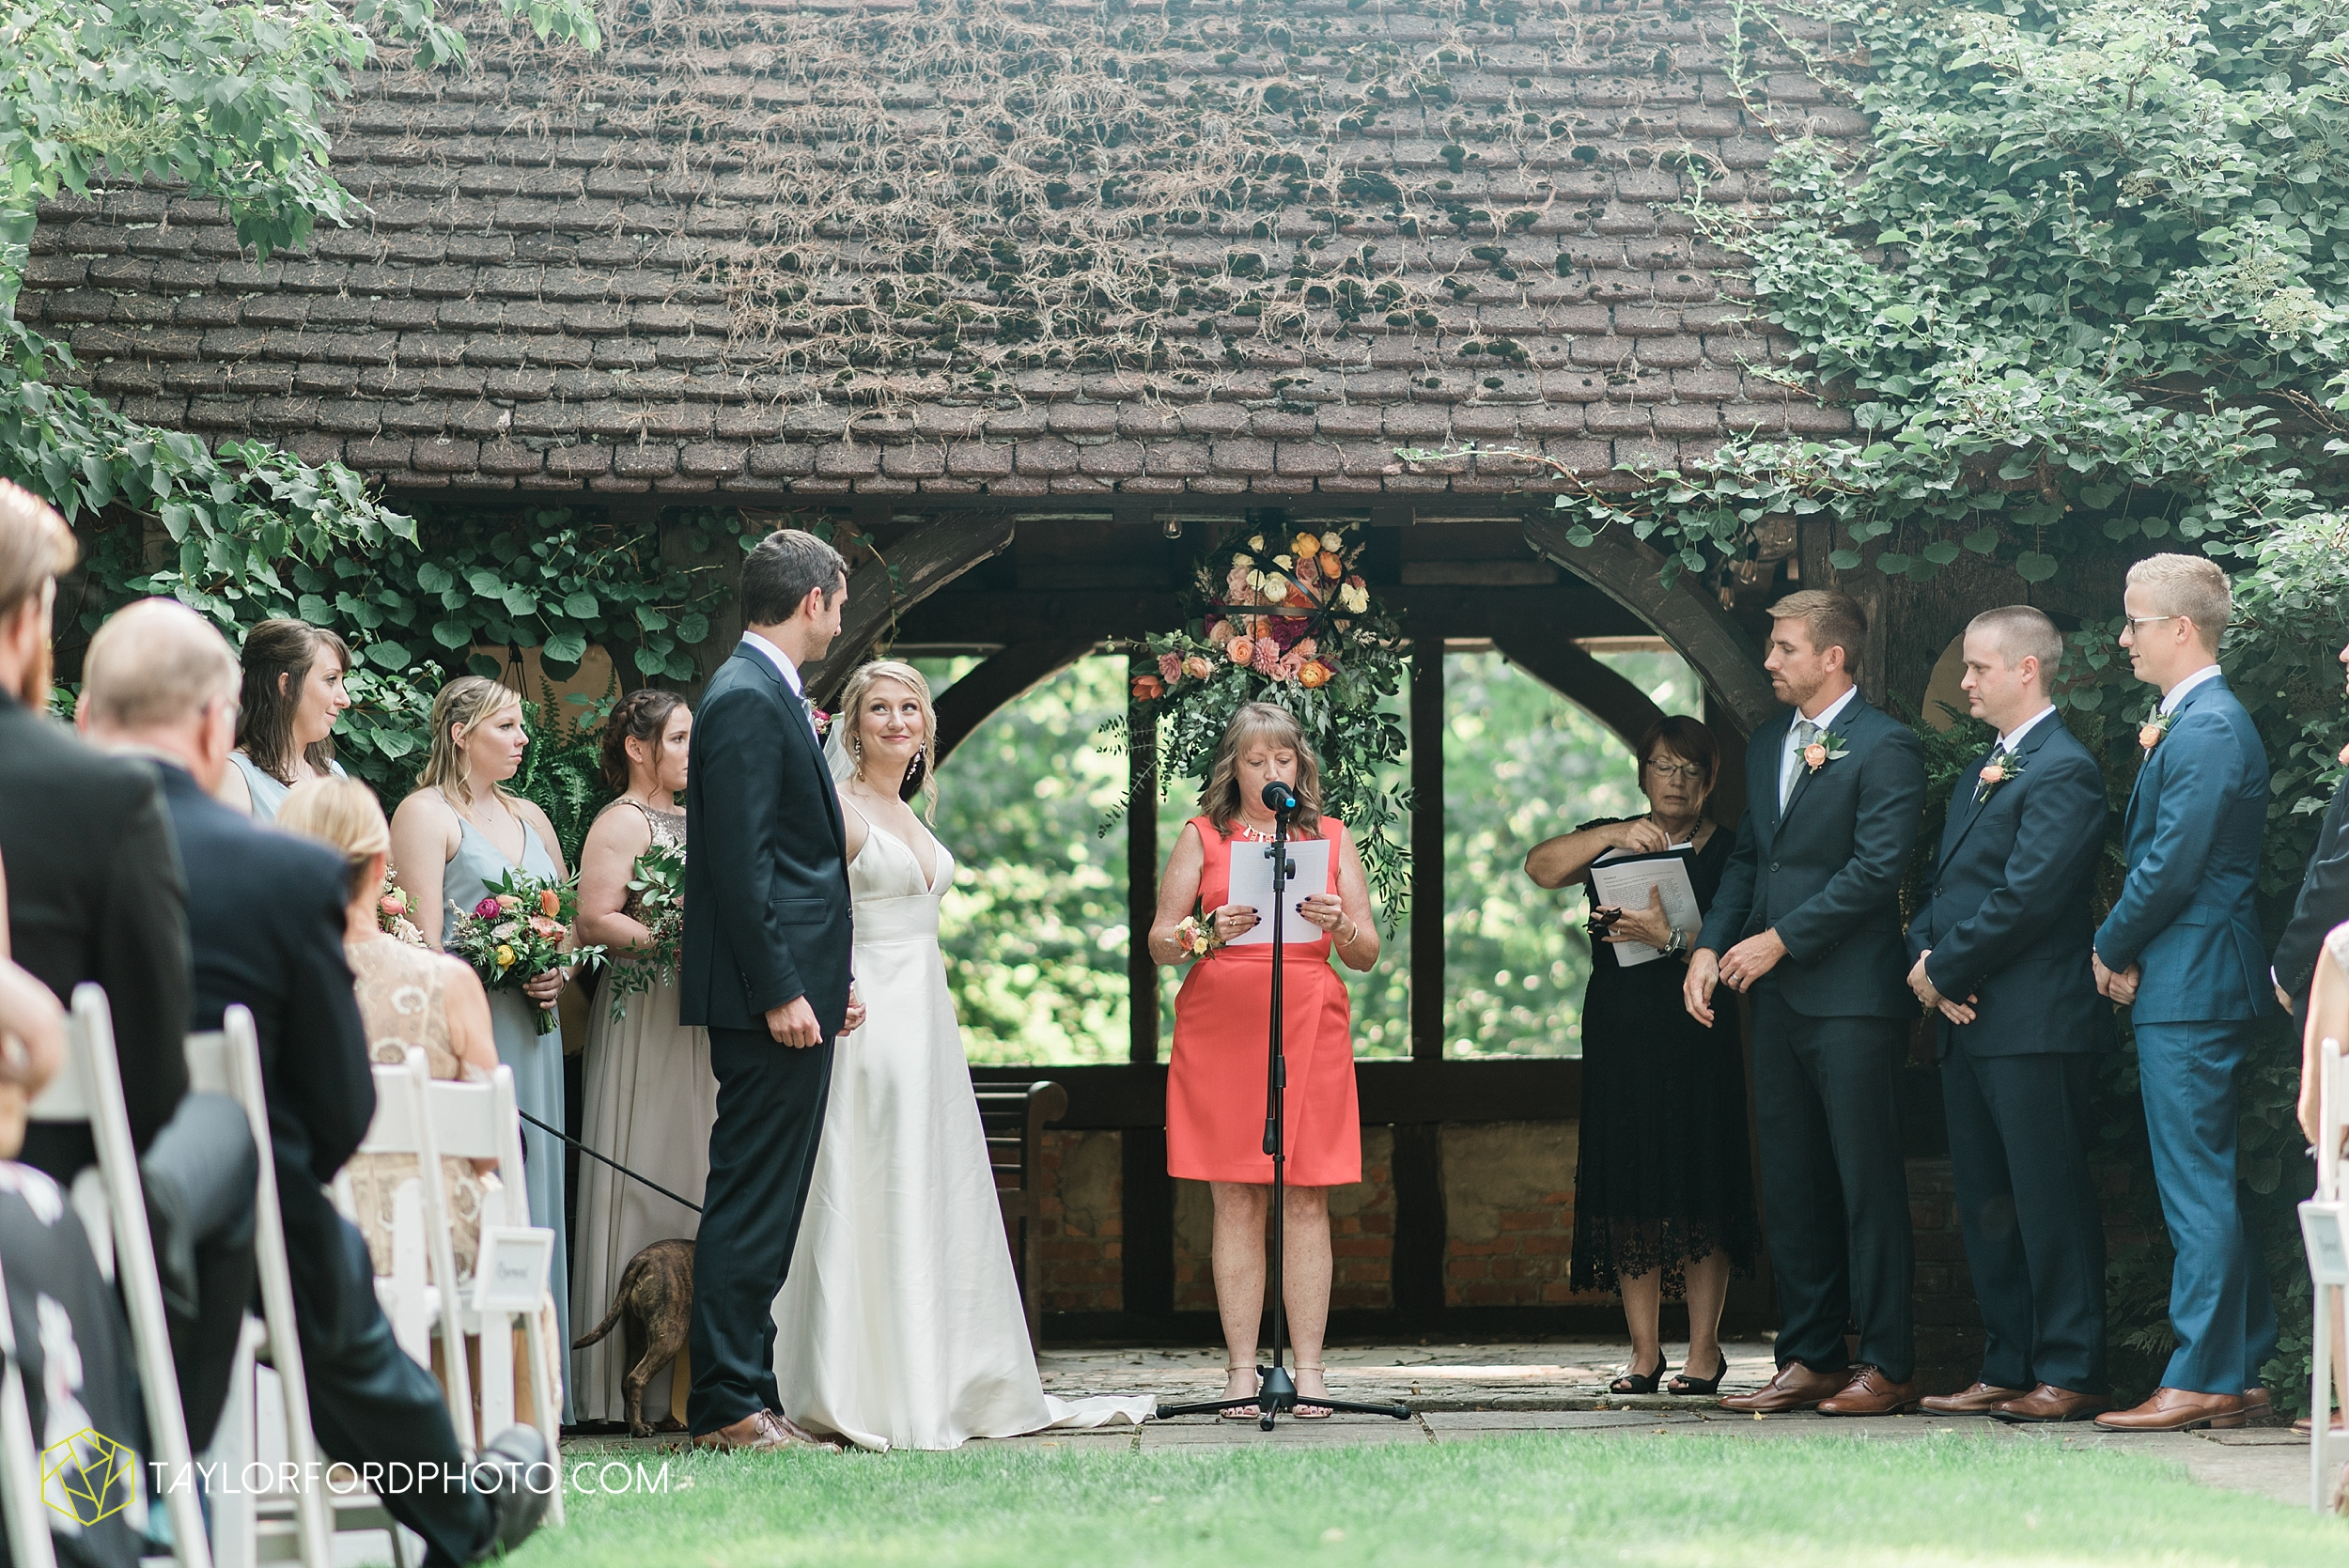 margot-may-evan-kohler-club-at-hillbrook-cleveland-chagrin-falls-outdoor-wedding-bhldn-gardenview-flowers-toledo-photographer-taylor-ford-photographer_9583.jpg